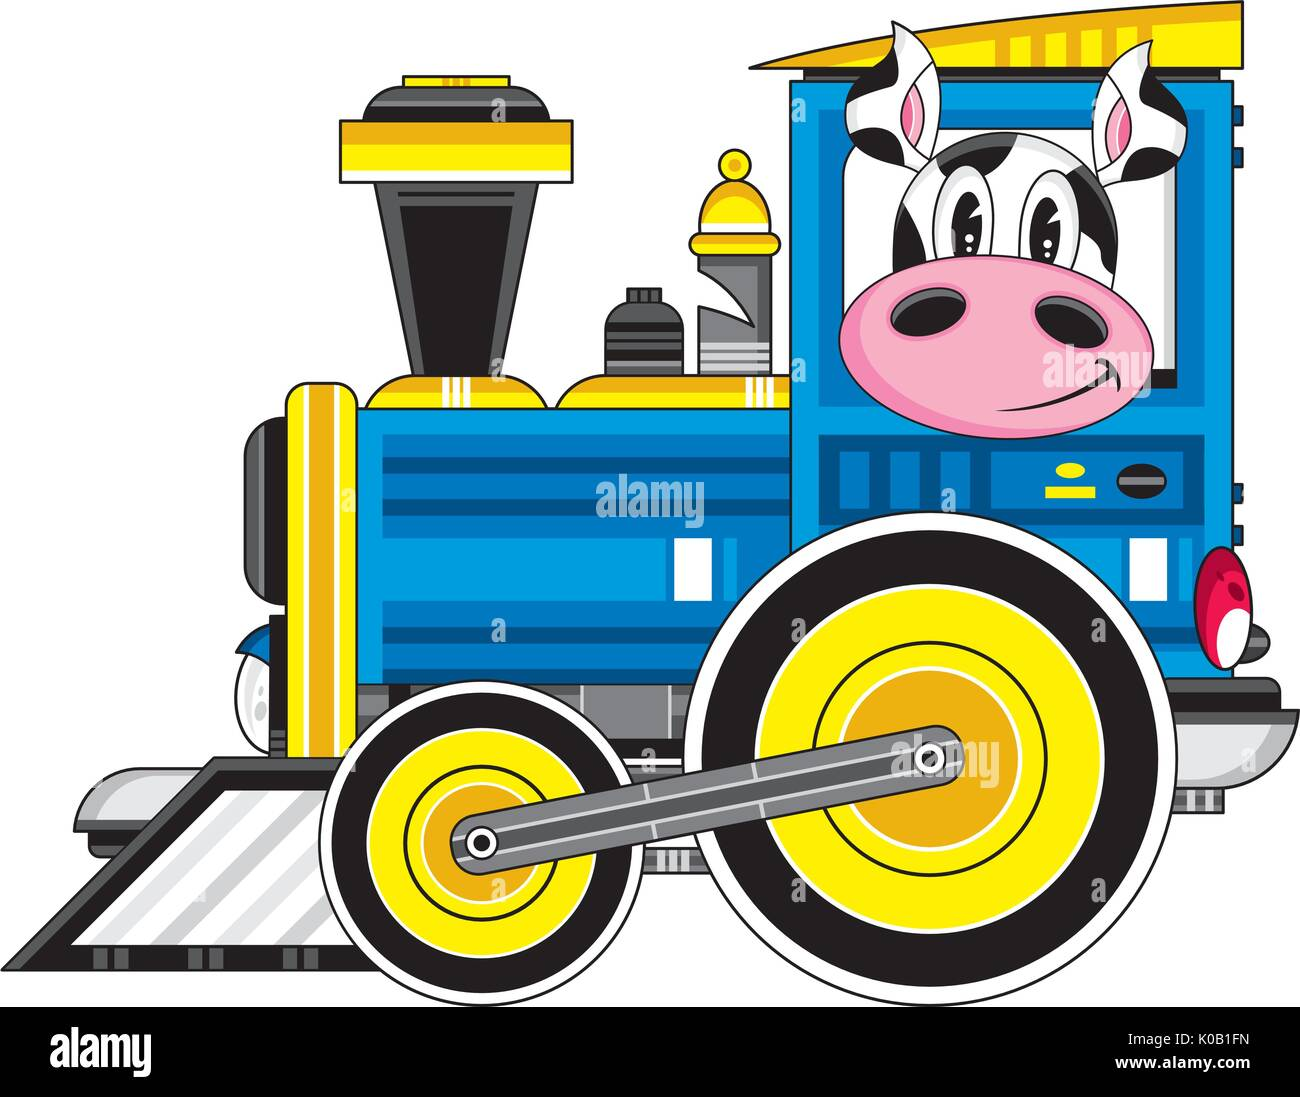 Train vapeur dessin anim avec conducteur vache vector illustration vecteurs et illustration - Train dessin anime chuggington ...